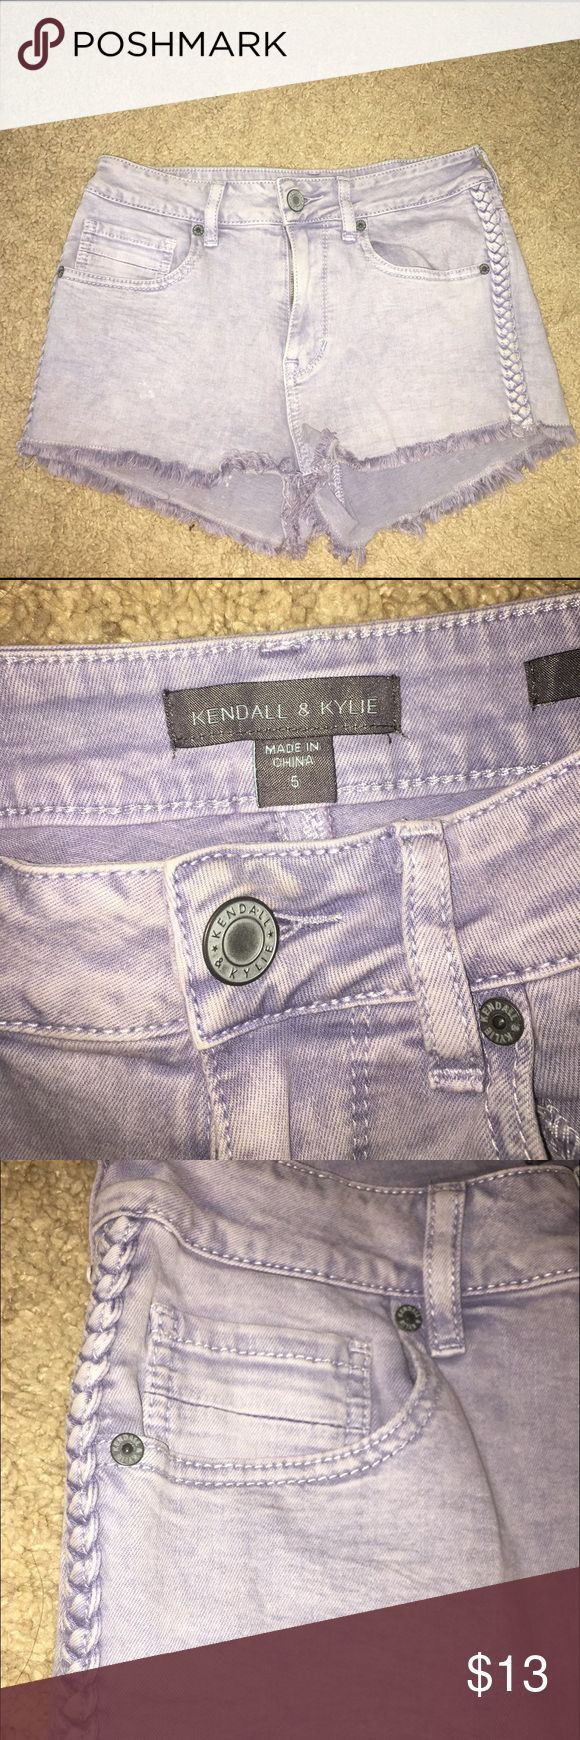 Light purple jean shorts Kendall & Kylie lavender jean shorts with braids up both sides Kendall & Kylie Shorts